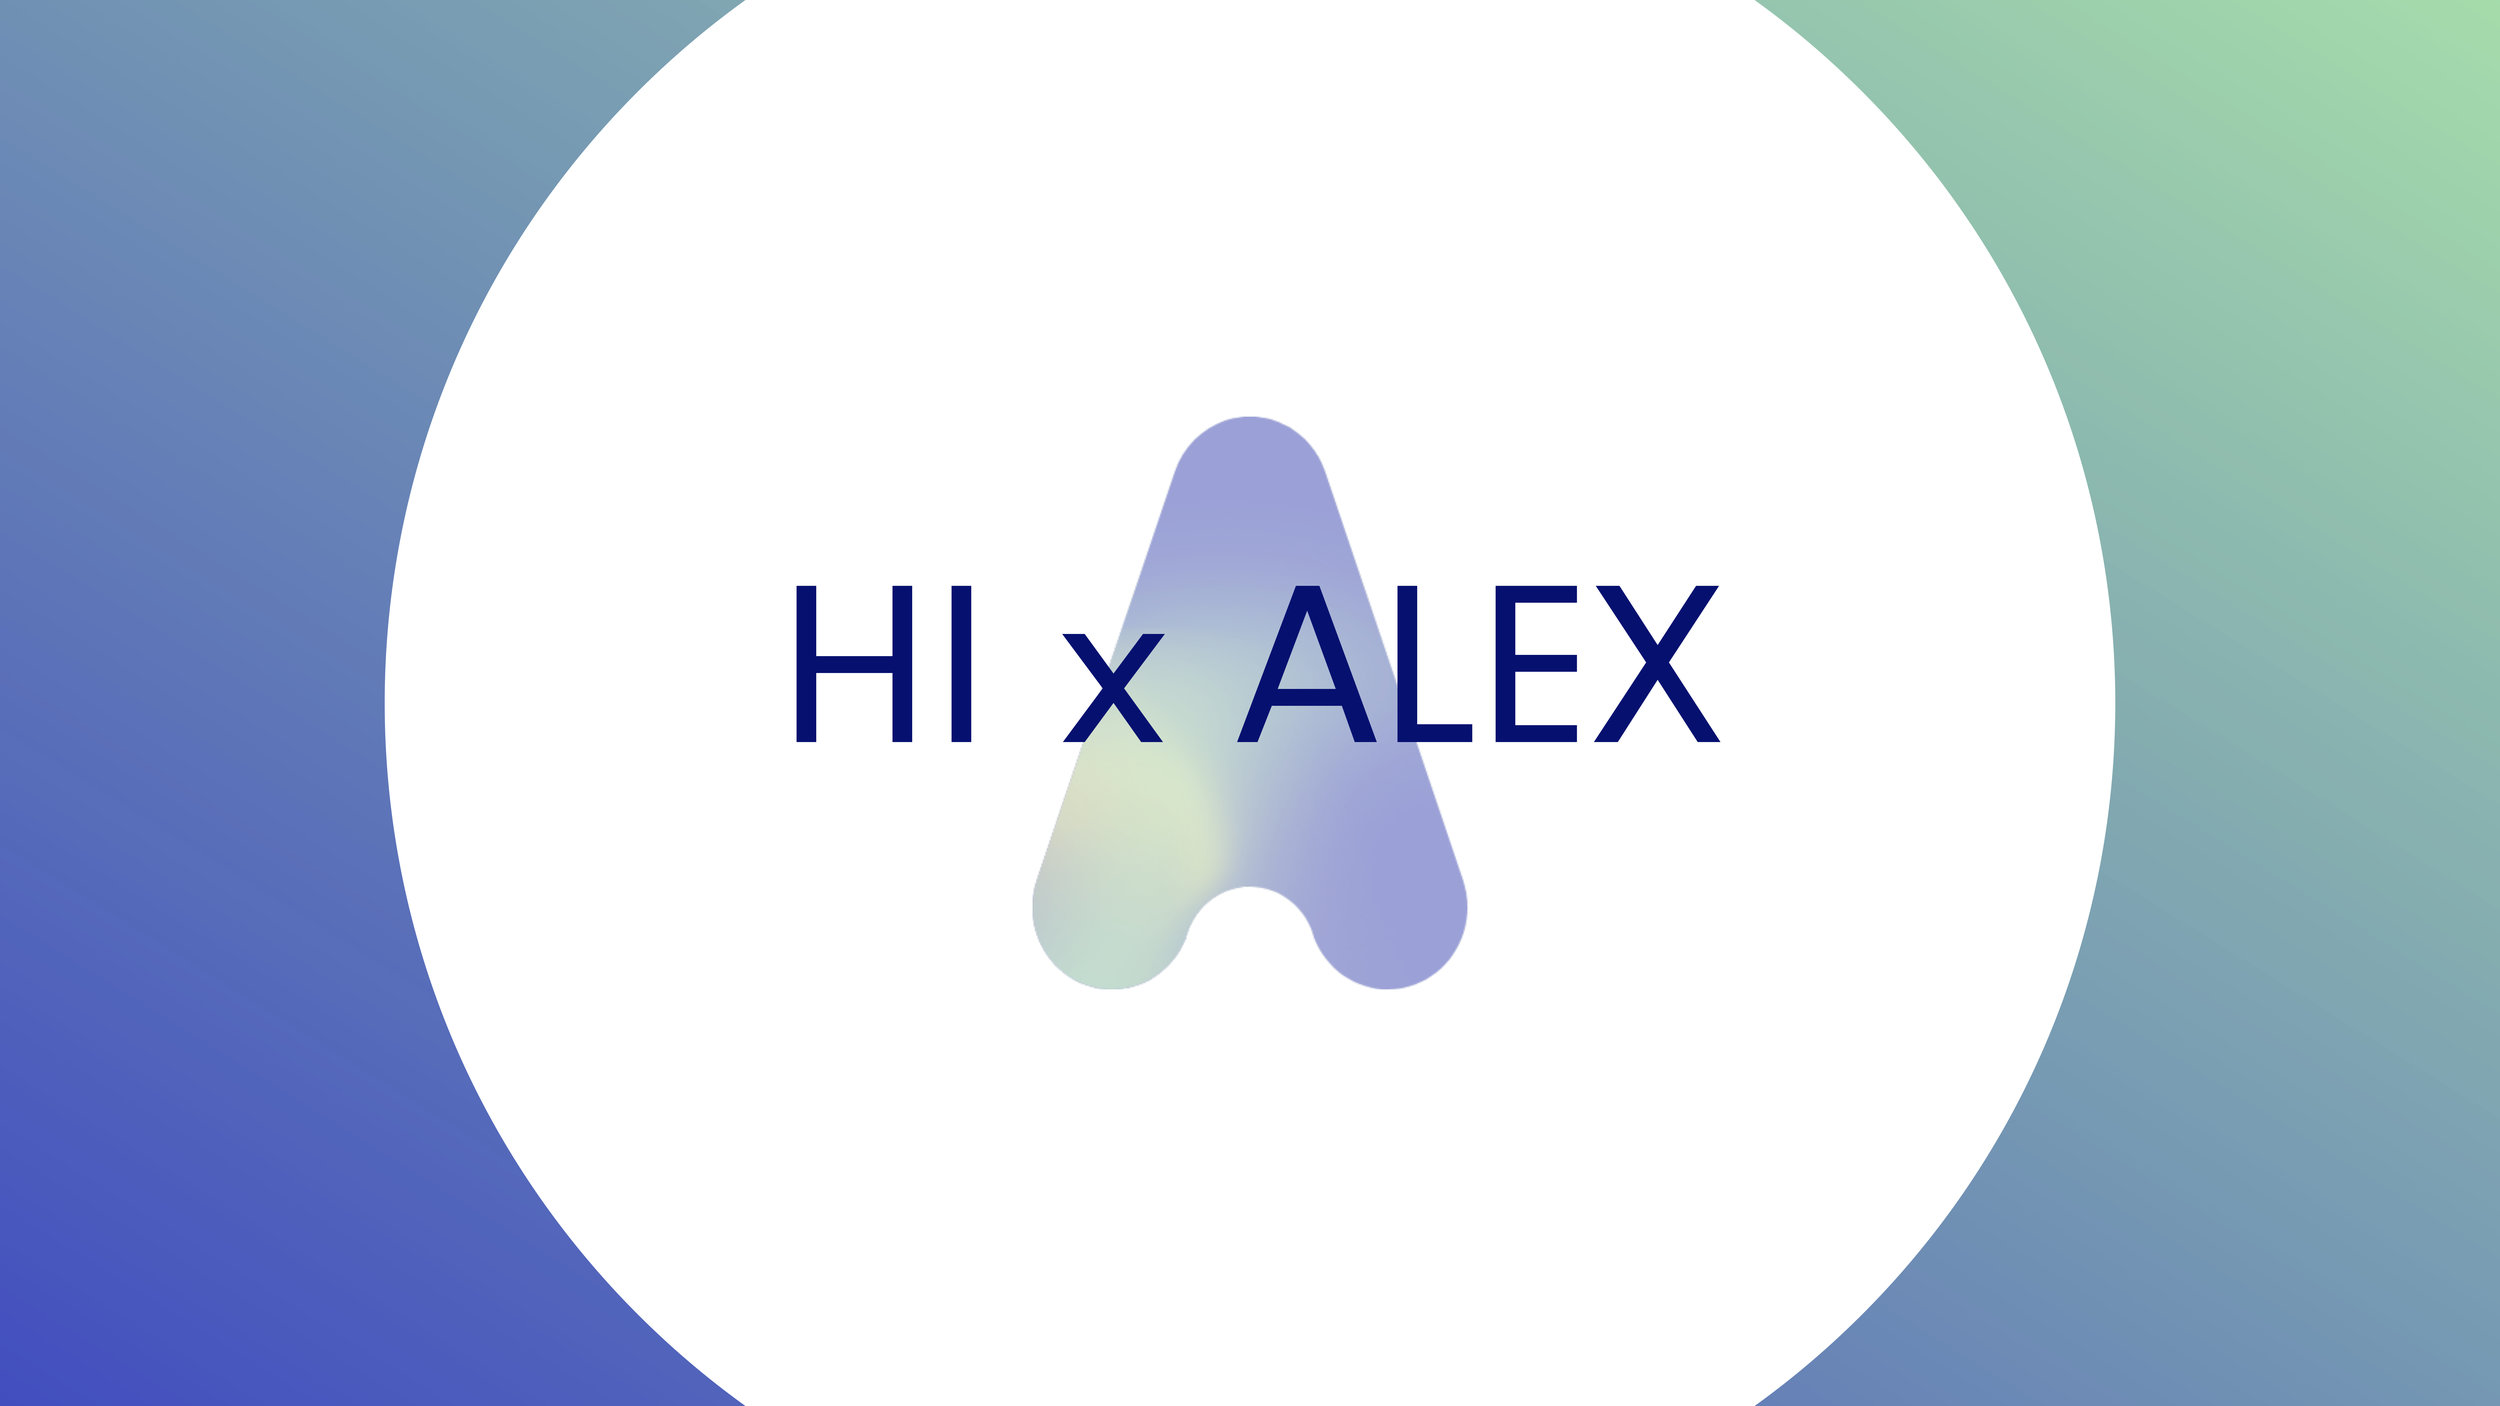 Economy of Content with Alex, the app.